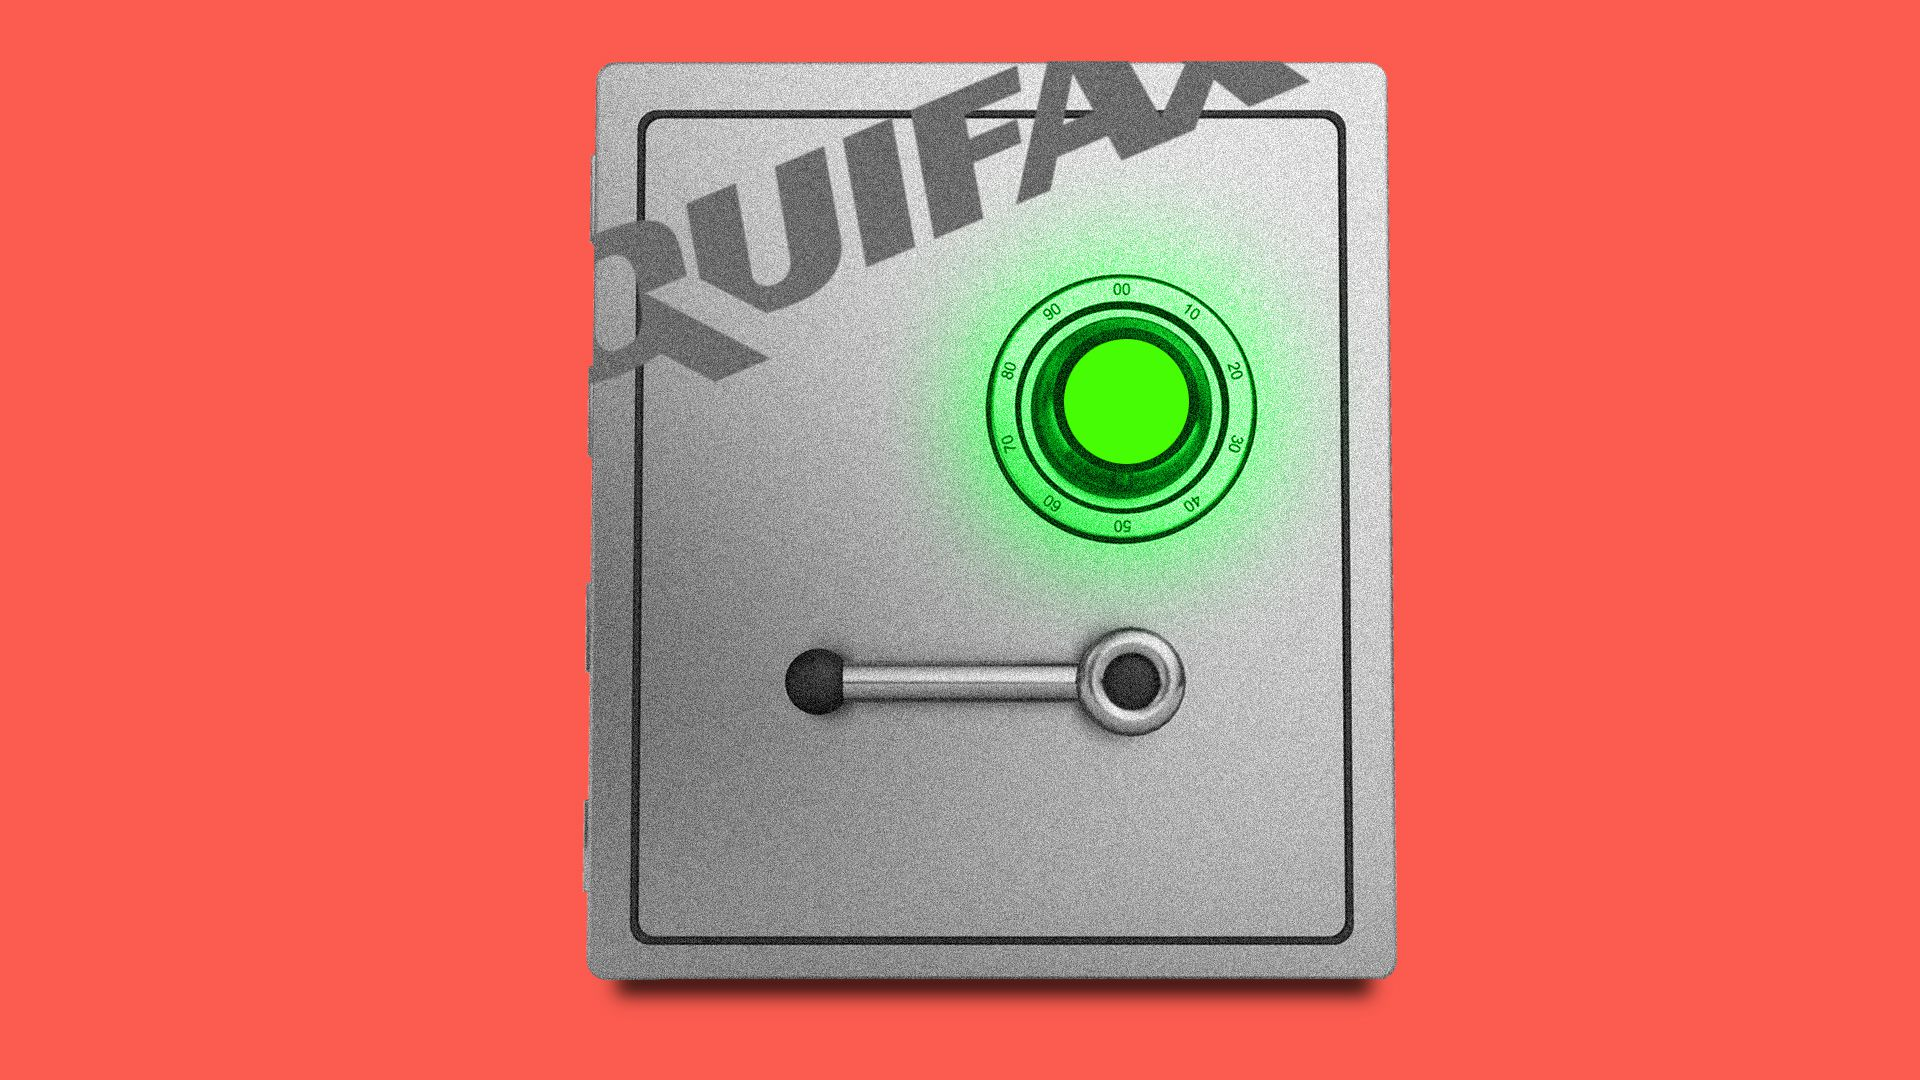 How to file a claim over Equifax's data breach - Axios